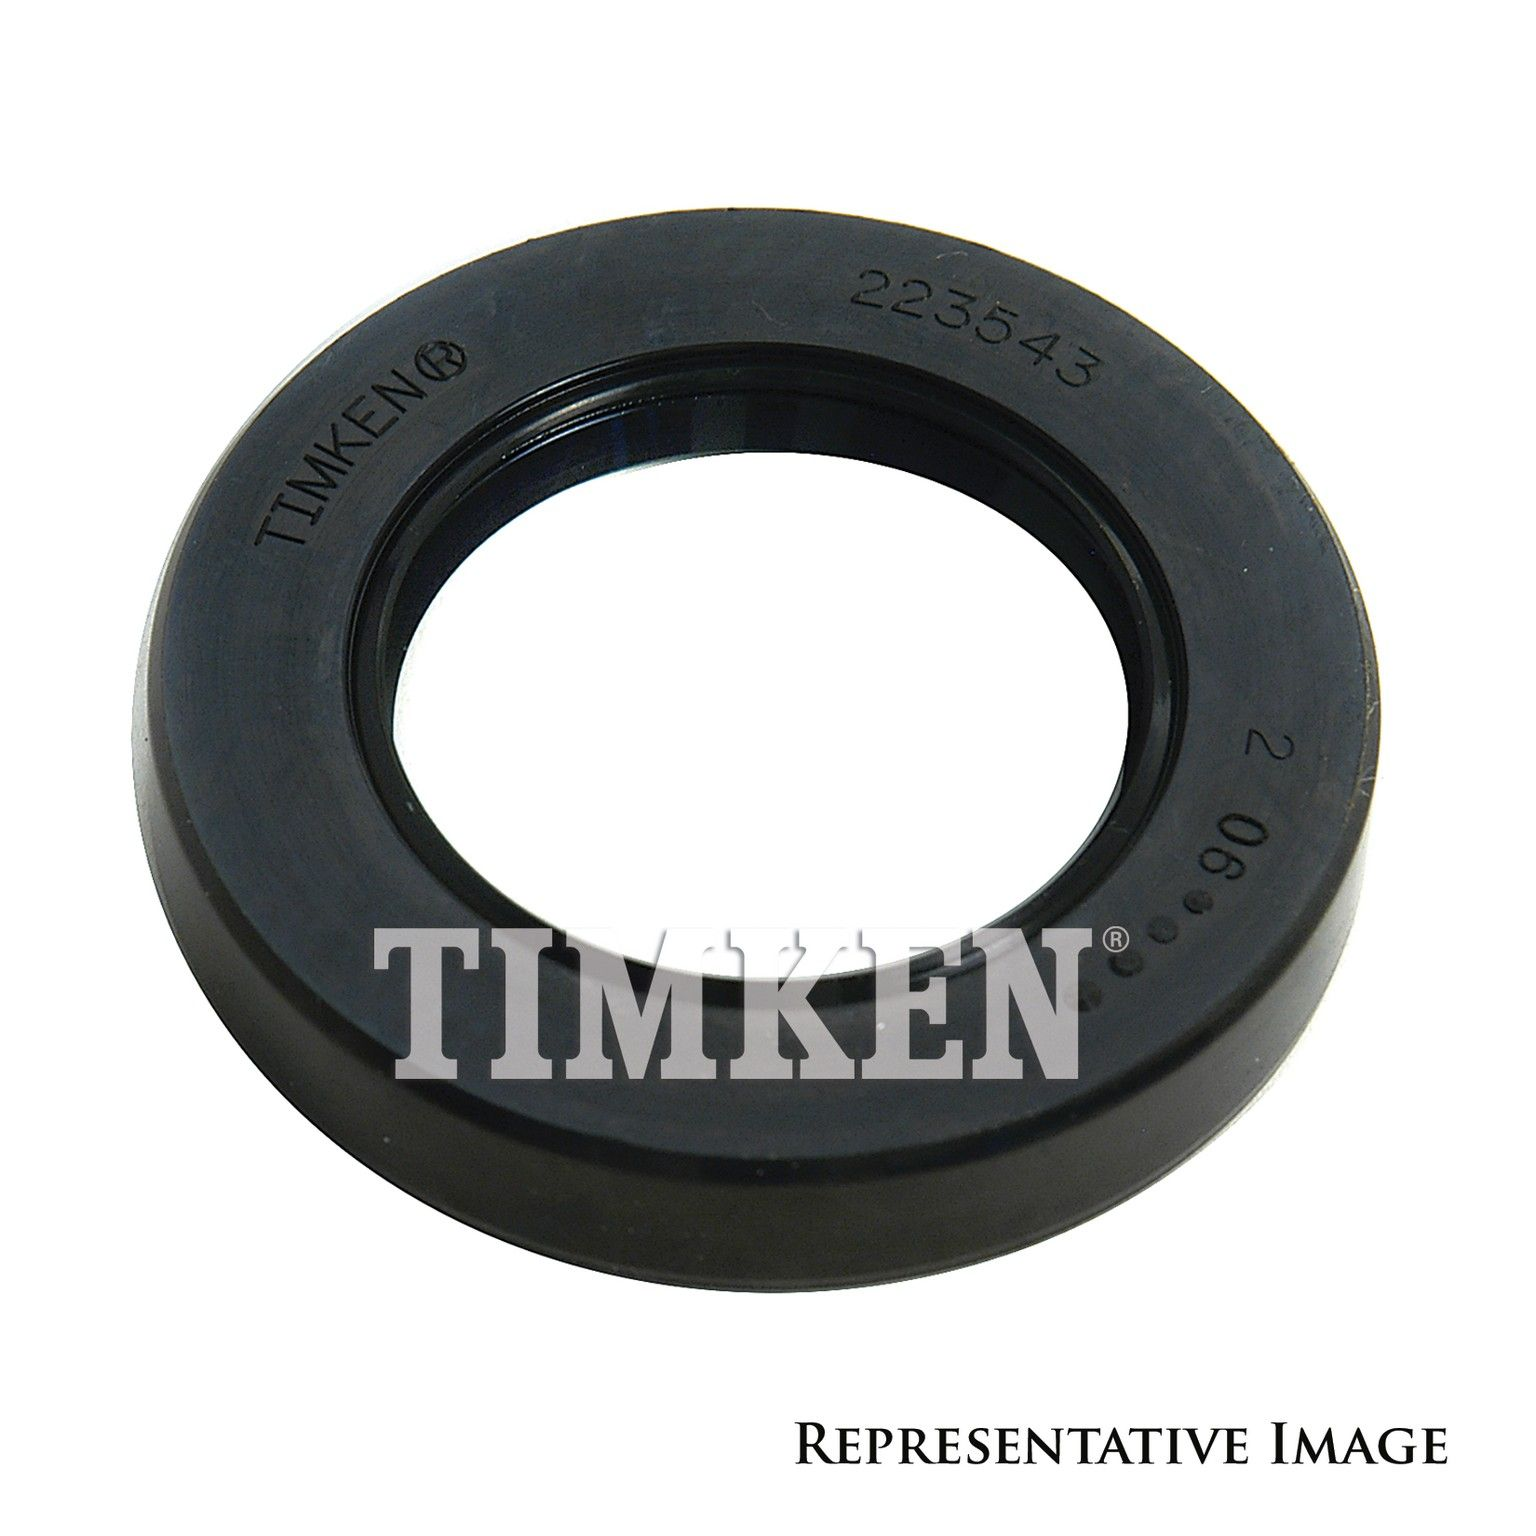 Nissan 710 Differential Seal Replacement (Timken) » Go-Parts